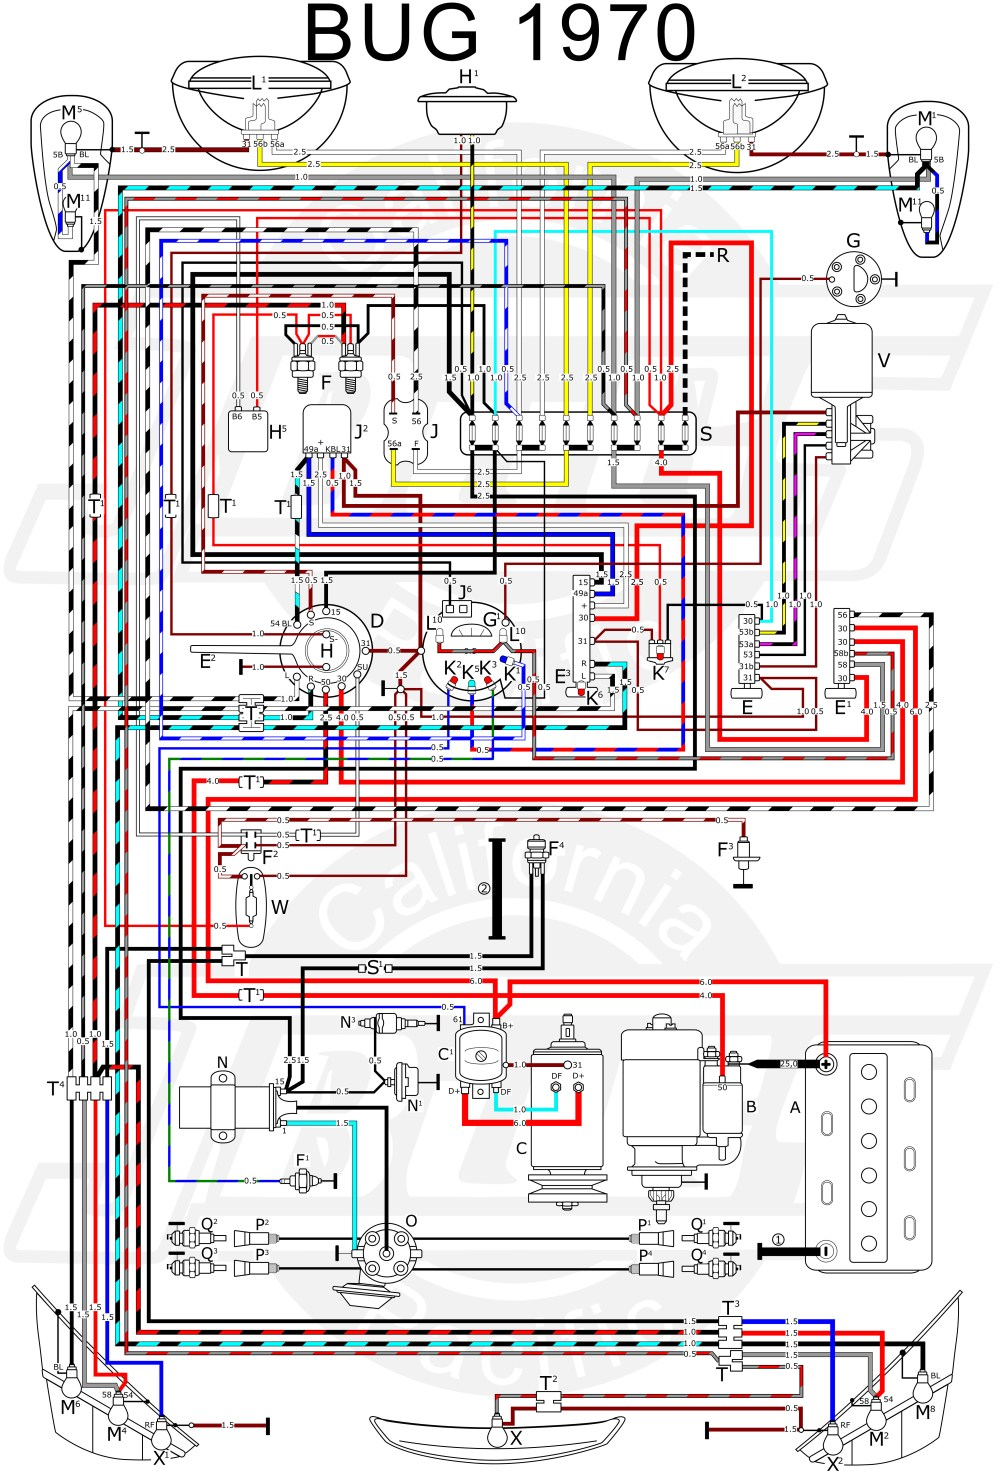 medium resolution of emergency flasher switch wiring diagram 1971 vw bug wiring wiring diagram for emergency flashers